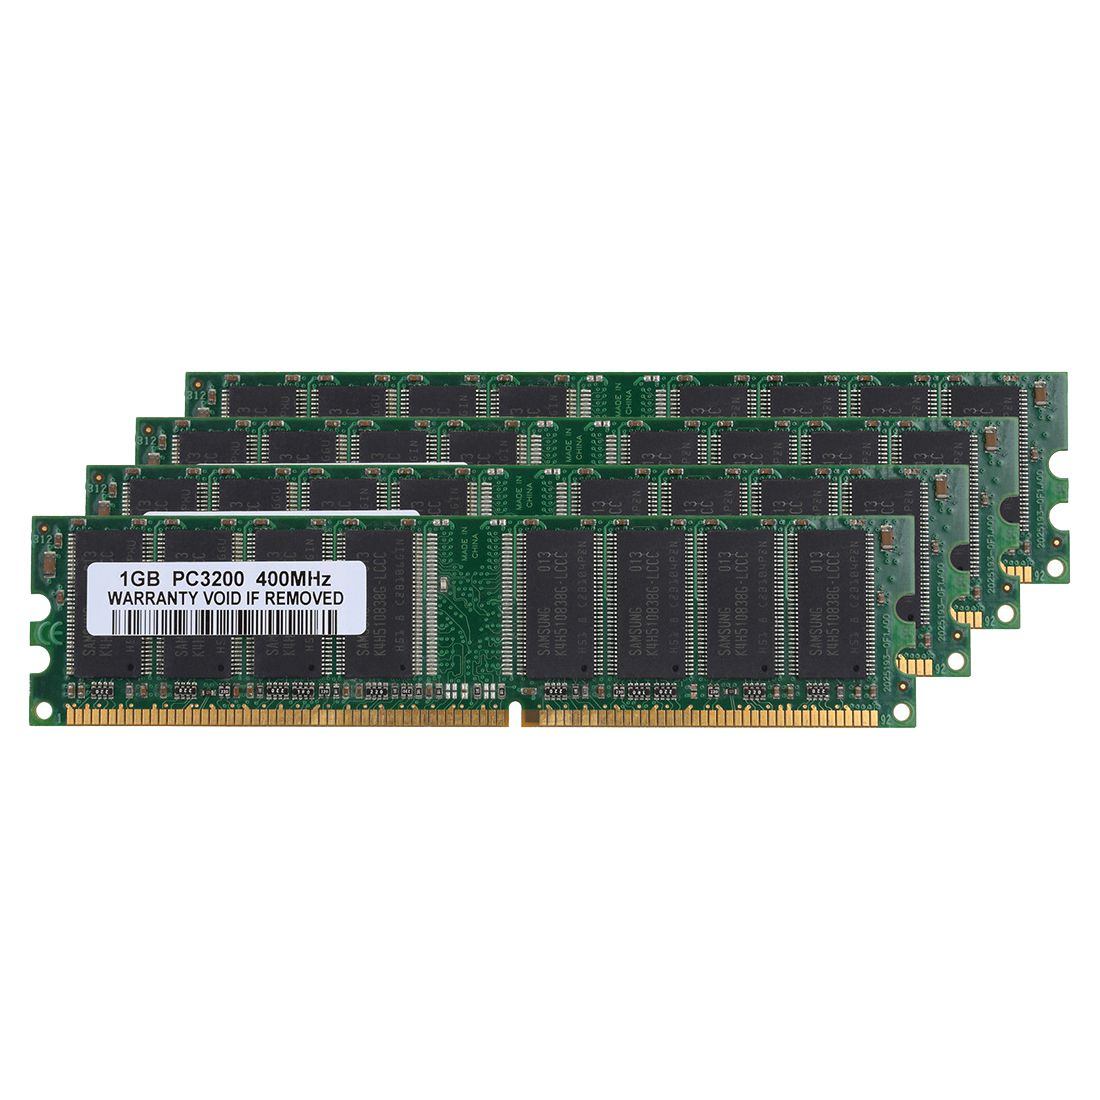 4GB Kit (4x <font><b>1GB</b></font>) DDR1-400MHz PC Desktop Memory PC1-3200 184pin Non-ECC DIMM Ram,green image